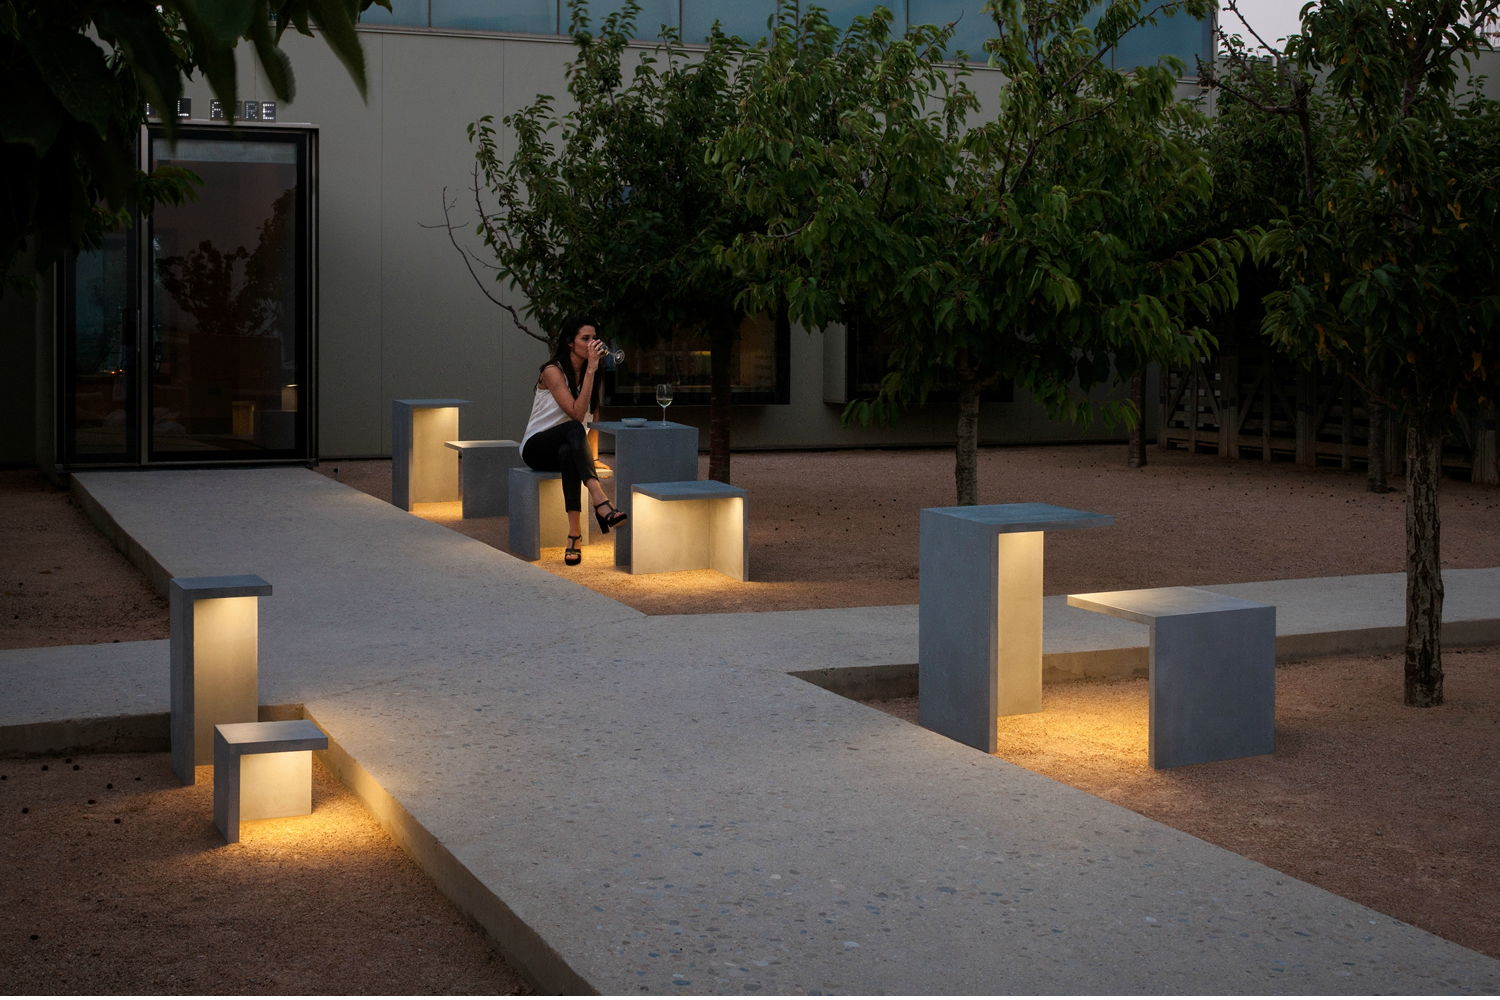 Josep xucl on decorative lighting for exterior for Exterior lighting design